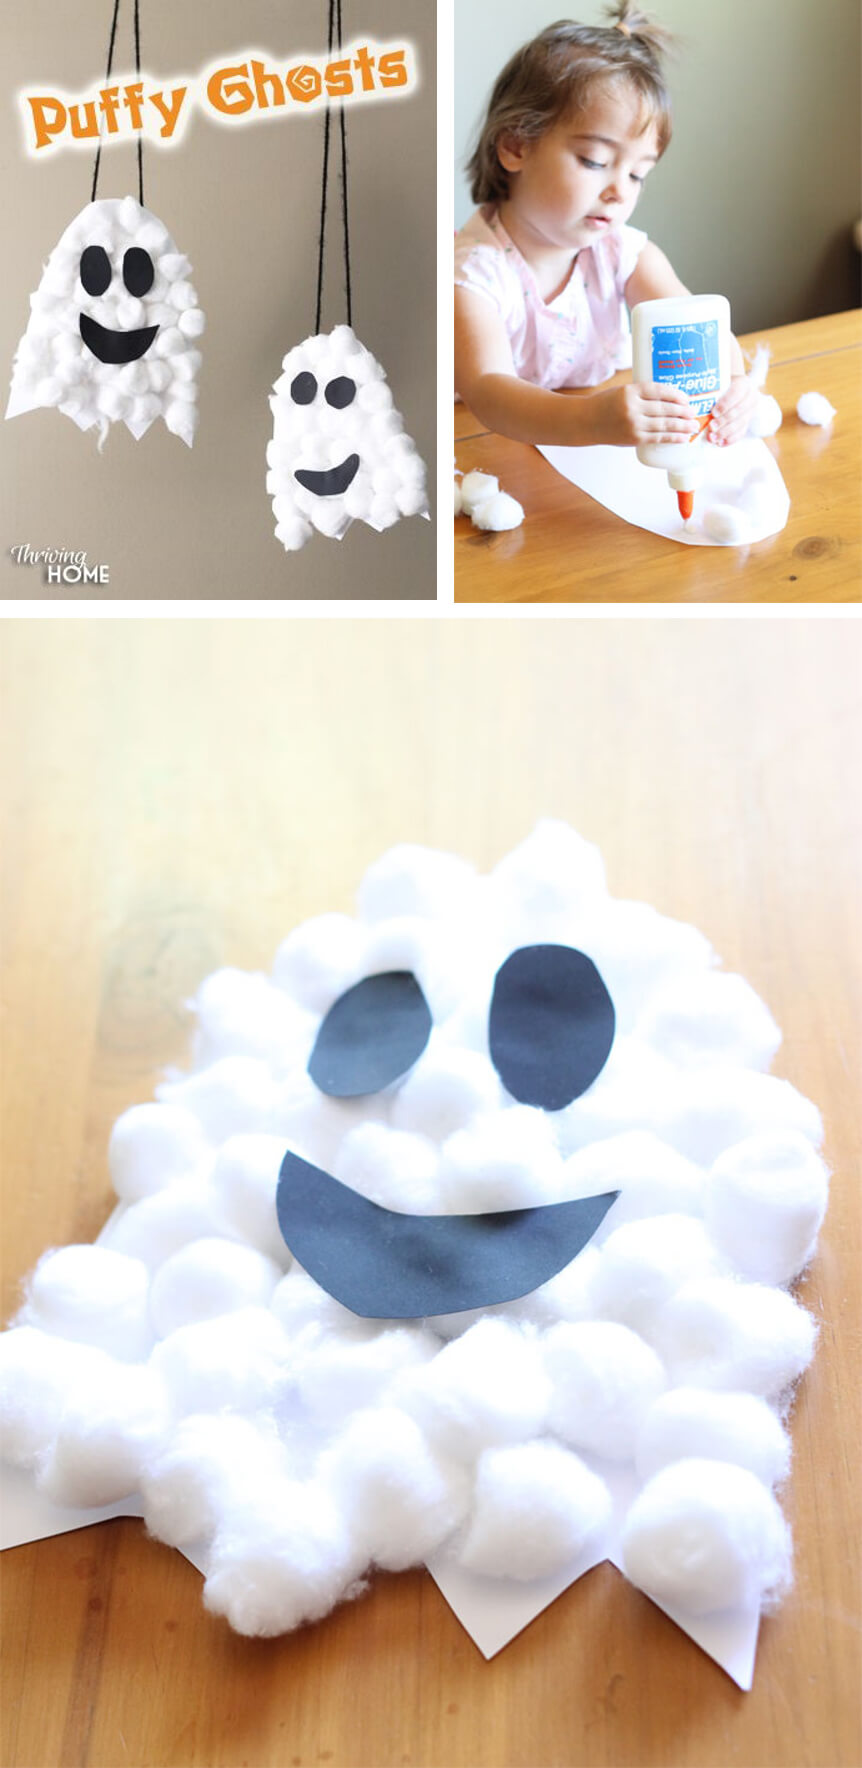 Friendly Cotton Ball Halloween Crafts | Fun & Creative DIY Halloween Crafts for Kids